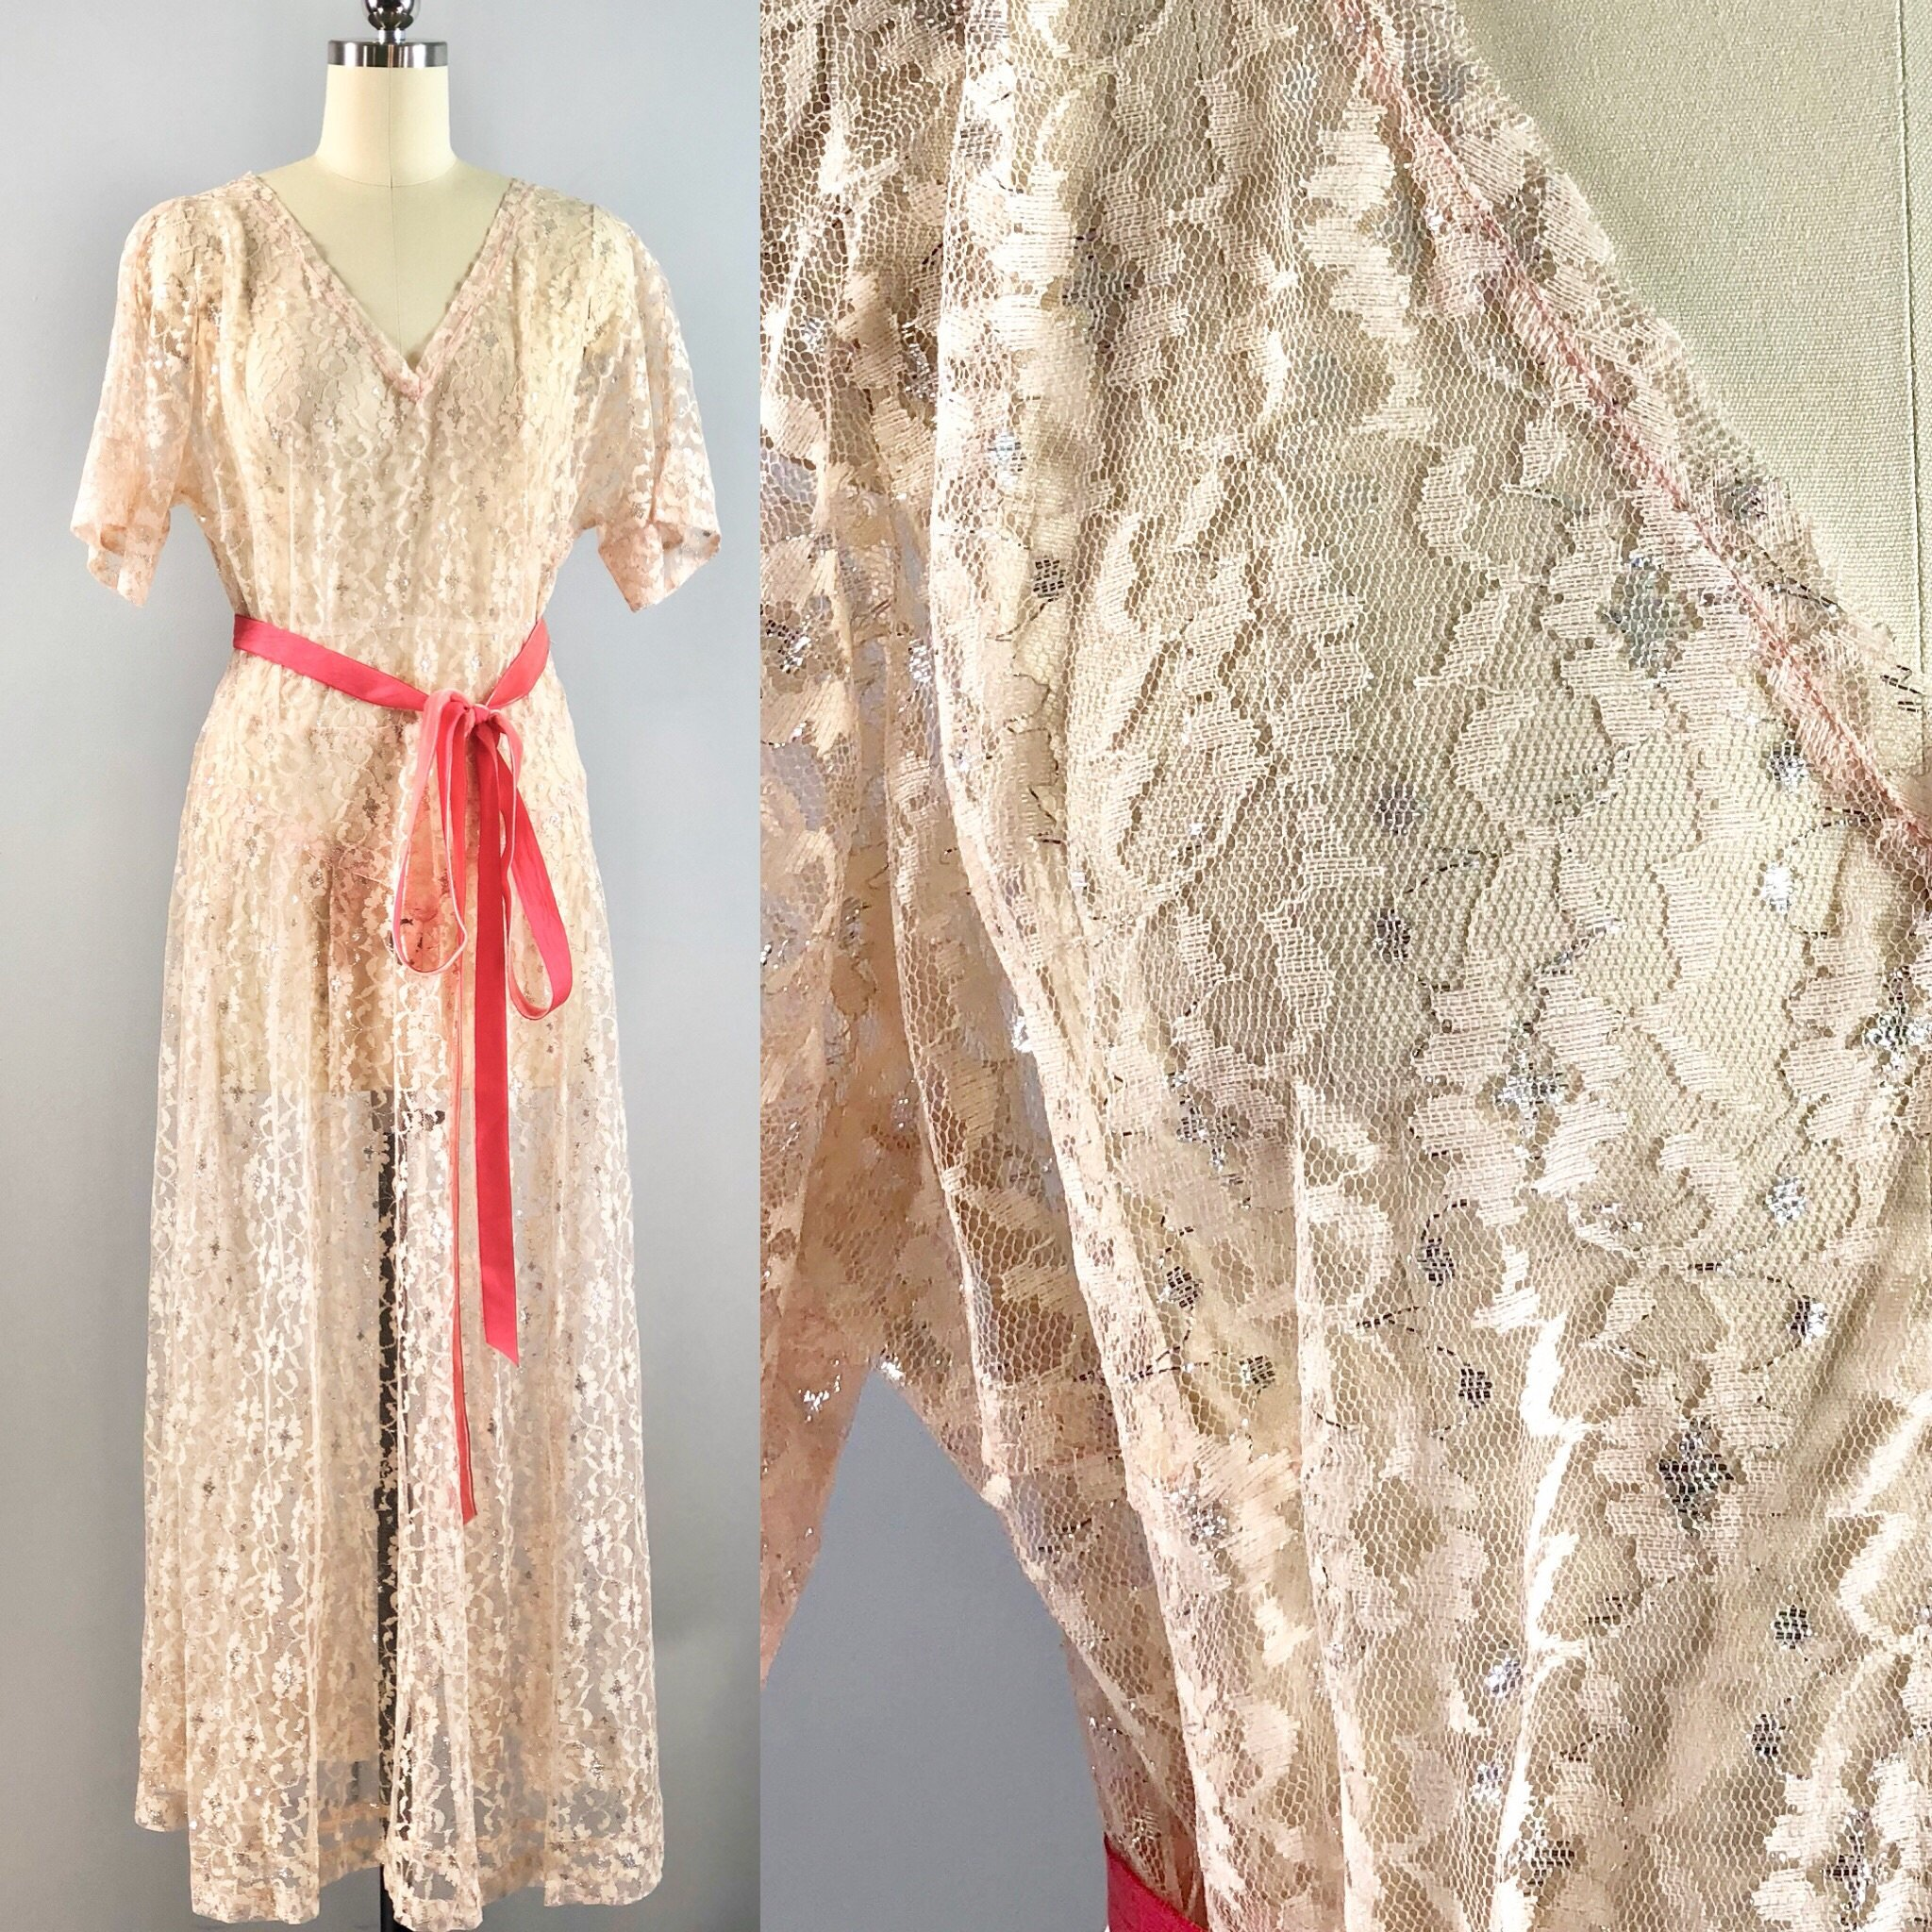 fe1516ecd 30s Vintage 1930s White Peach Silver Metallic Chantilly Lace Over Dress  Shift 38 bust